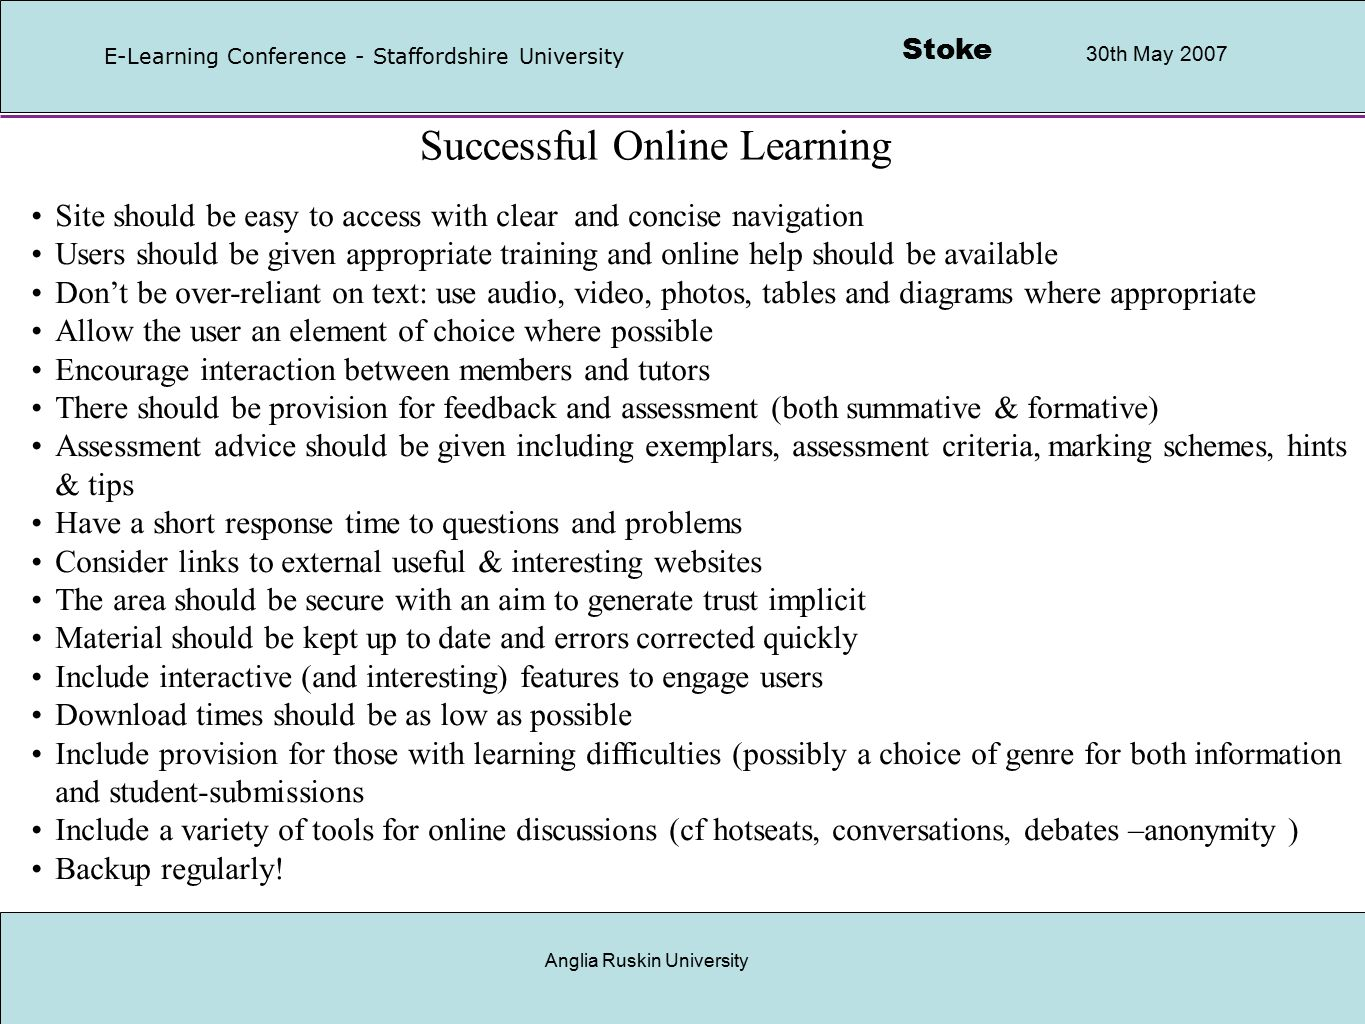 Stoke 30th May 2007 E-Learning Conference - Staffordshire University Anglia Ruskin University Key issues Knowledge can come from practitioners Learners can research & communicate Community online can work, but must be facilitated Widening participation is not watering down or devaluing what is learnt.